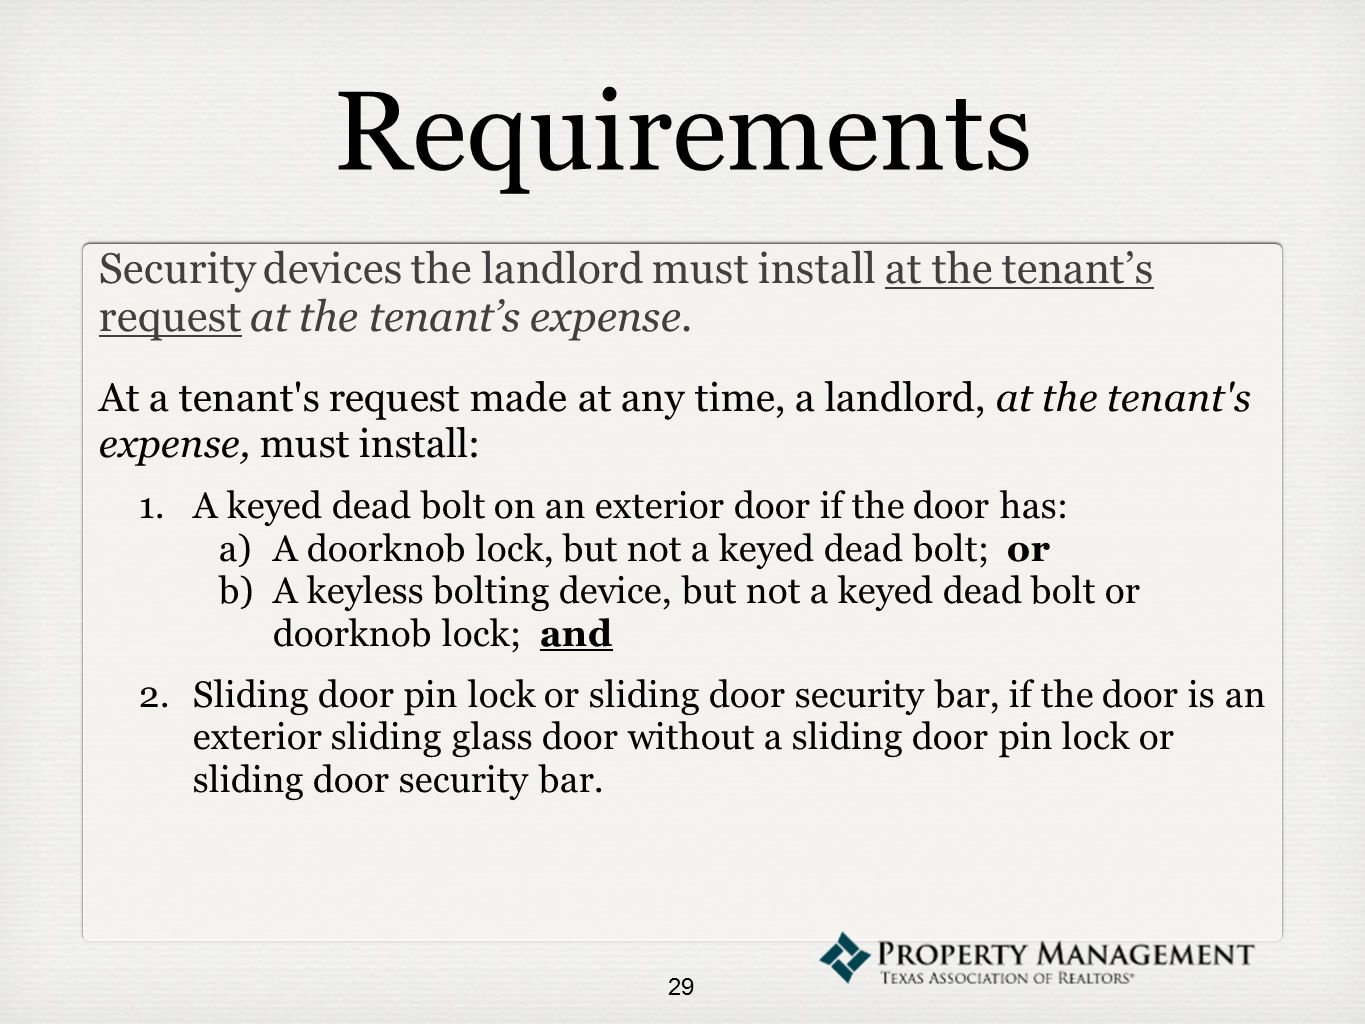 Requirements Security devices the landlord must install at the tenant's request at the tenant's expense.